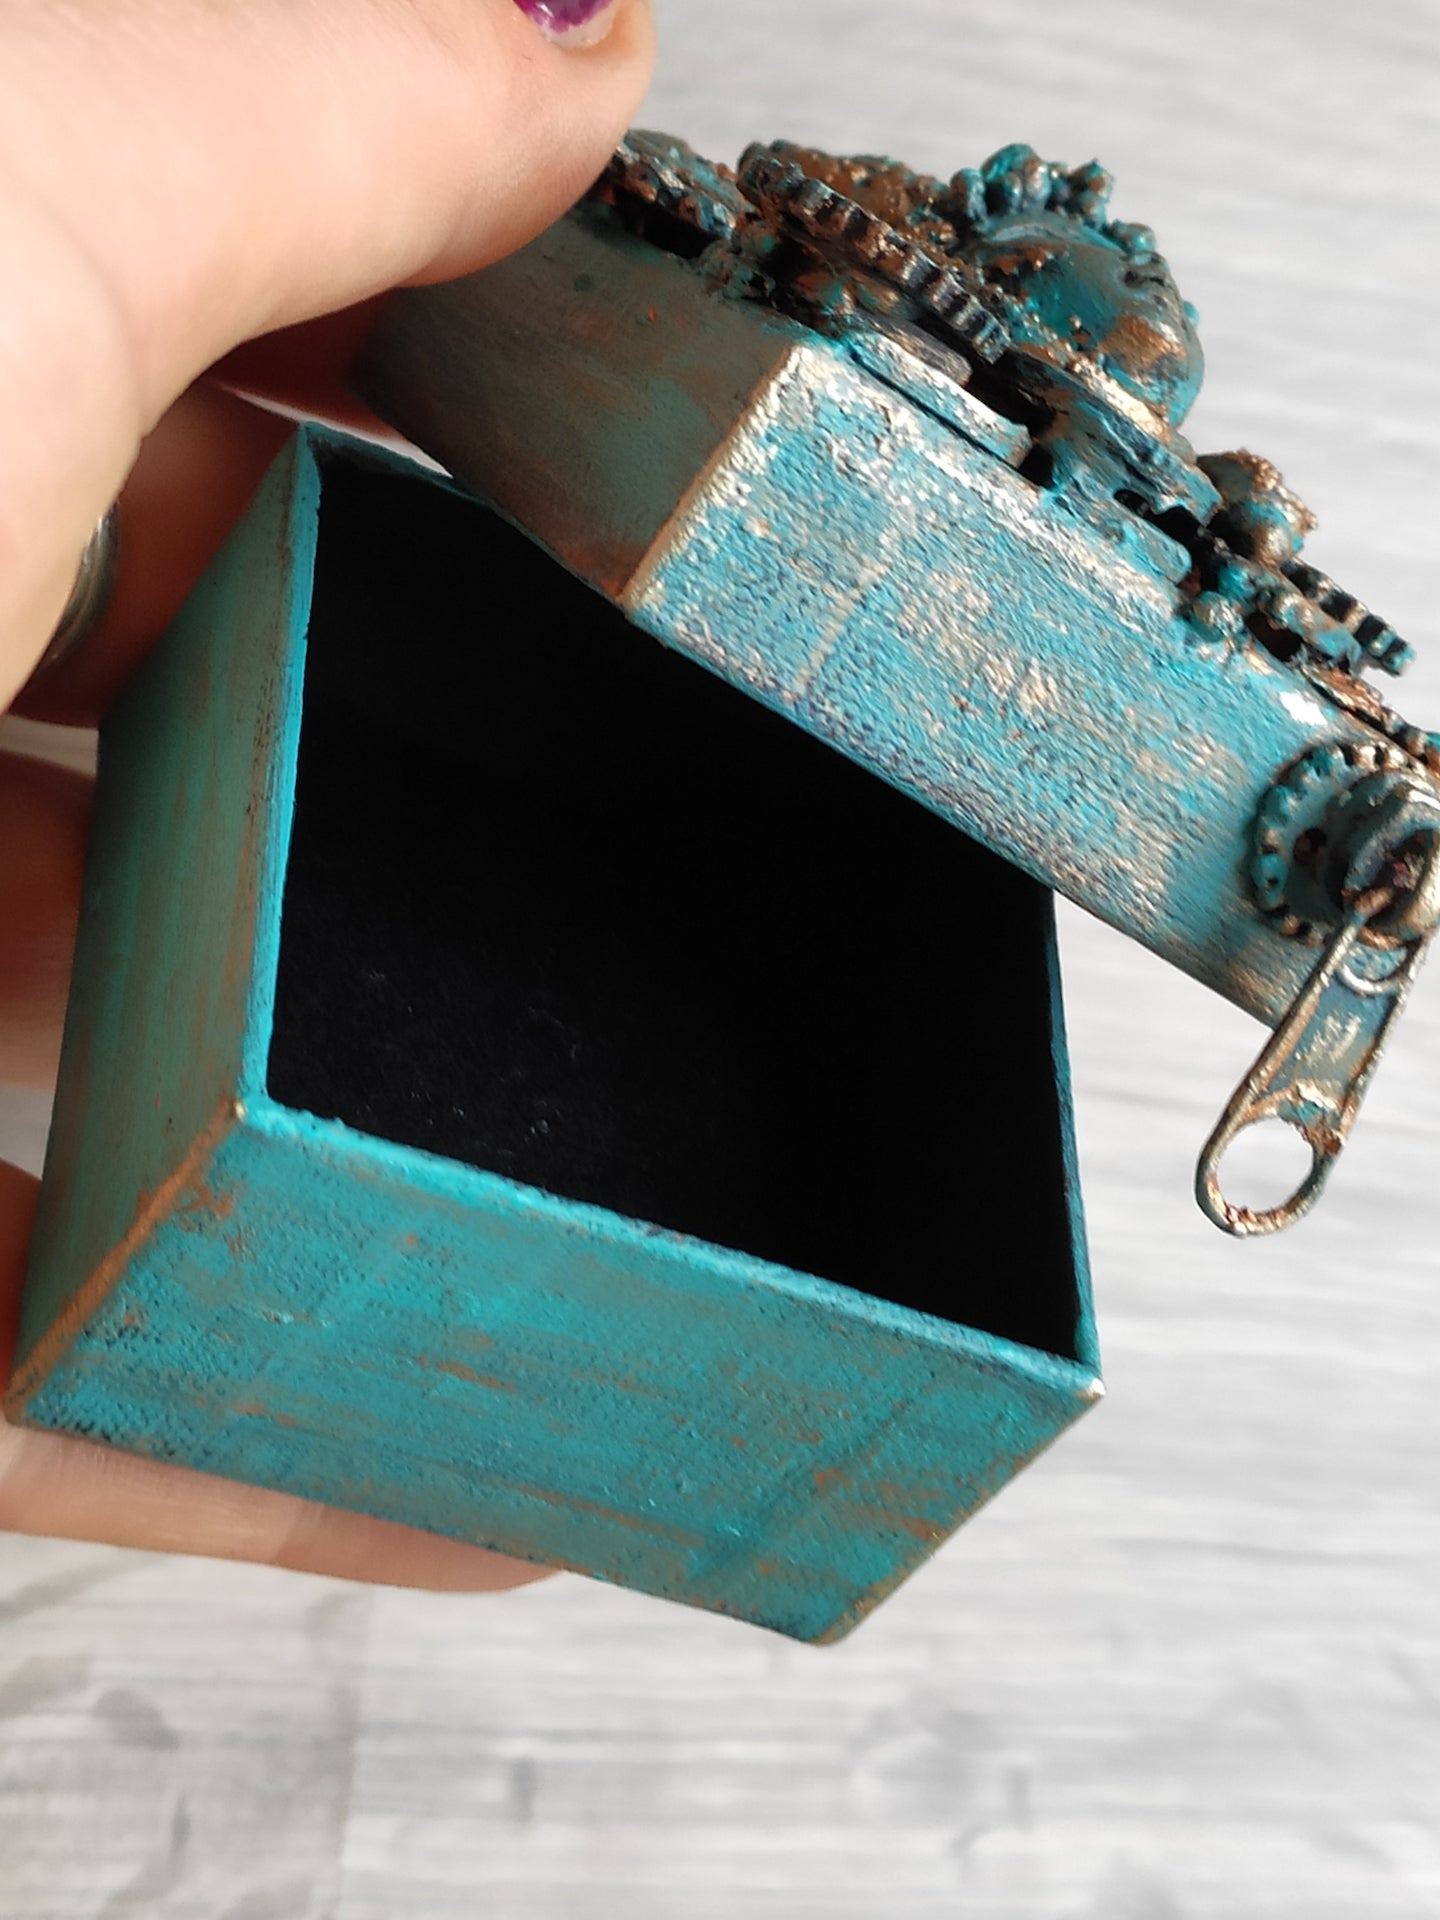 Tiny blue steampunk/ industrial box